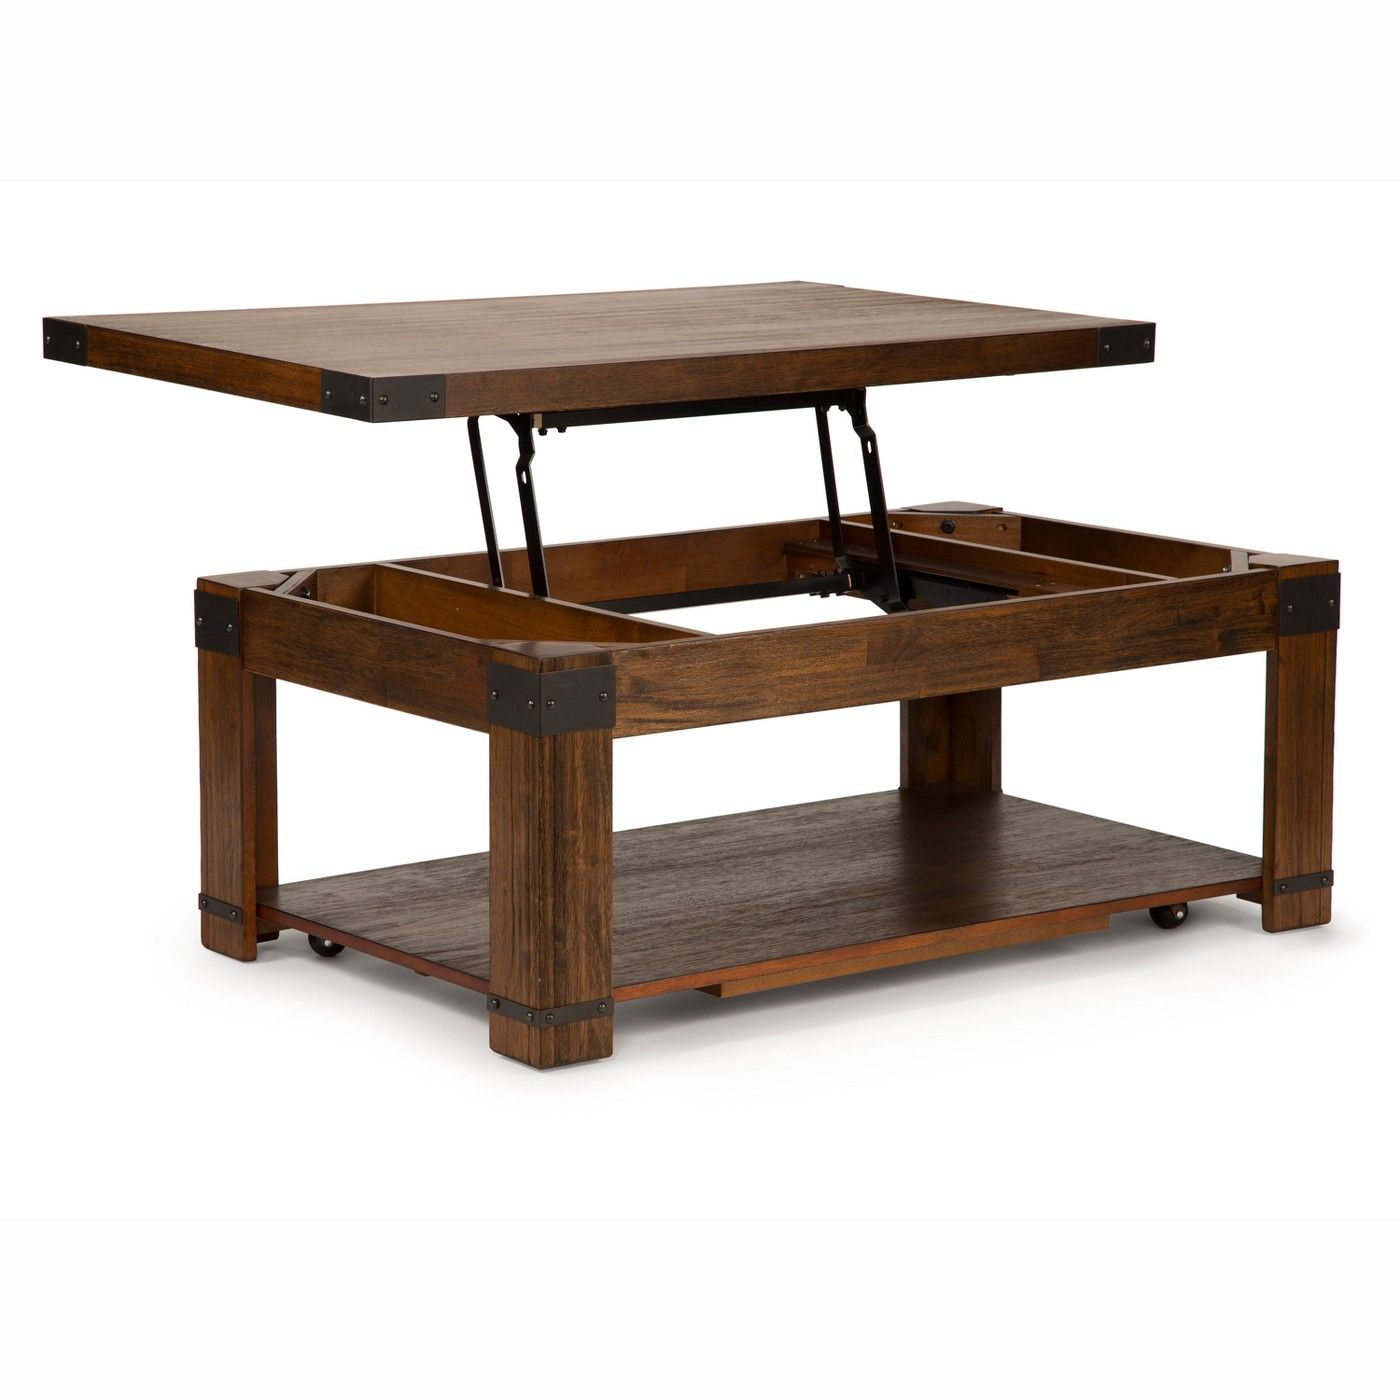 Arusha Lift Top Cocktail Table With Casters Medium Cherry Steve Silver Coffee Table Lift Top Coffee Table Coffee Table Rectangle [ 1400 x 1400 Pixel ]